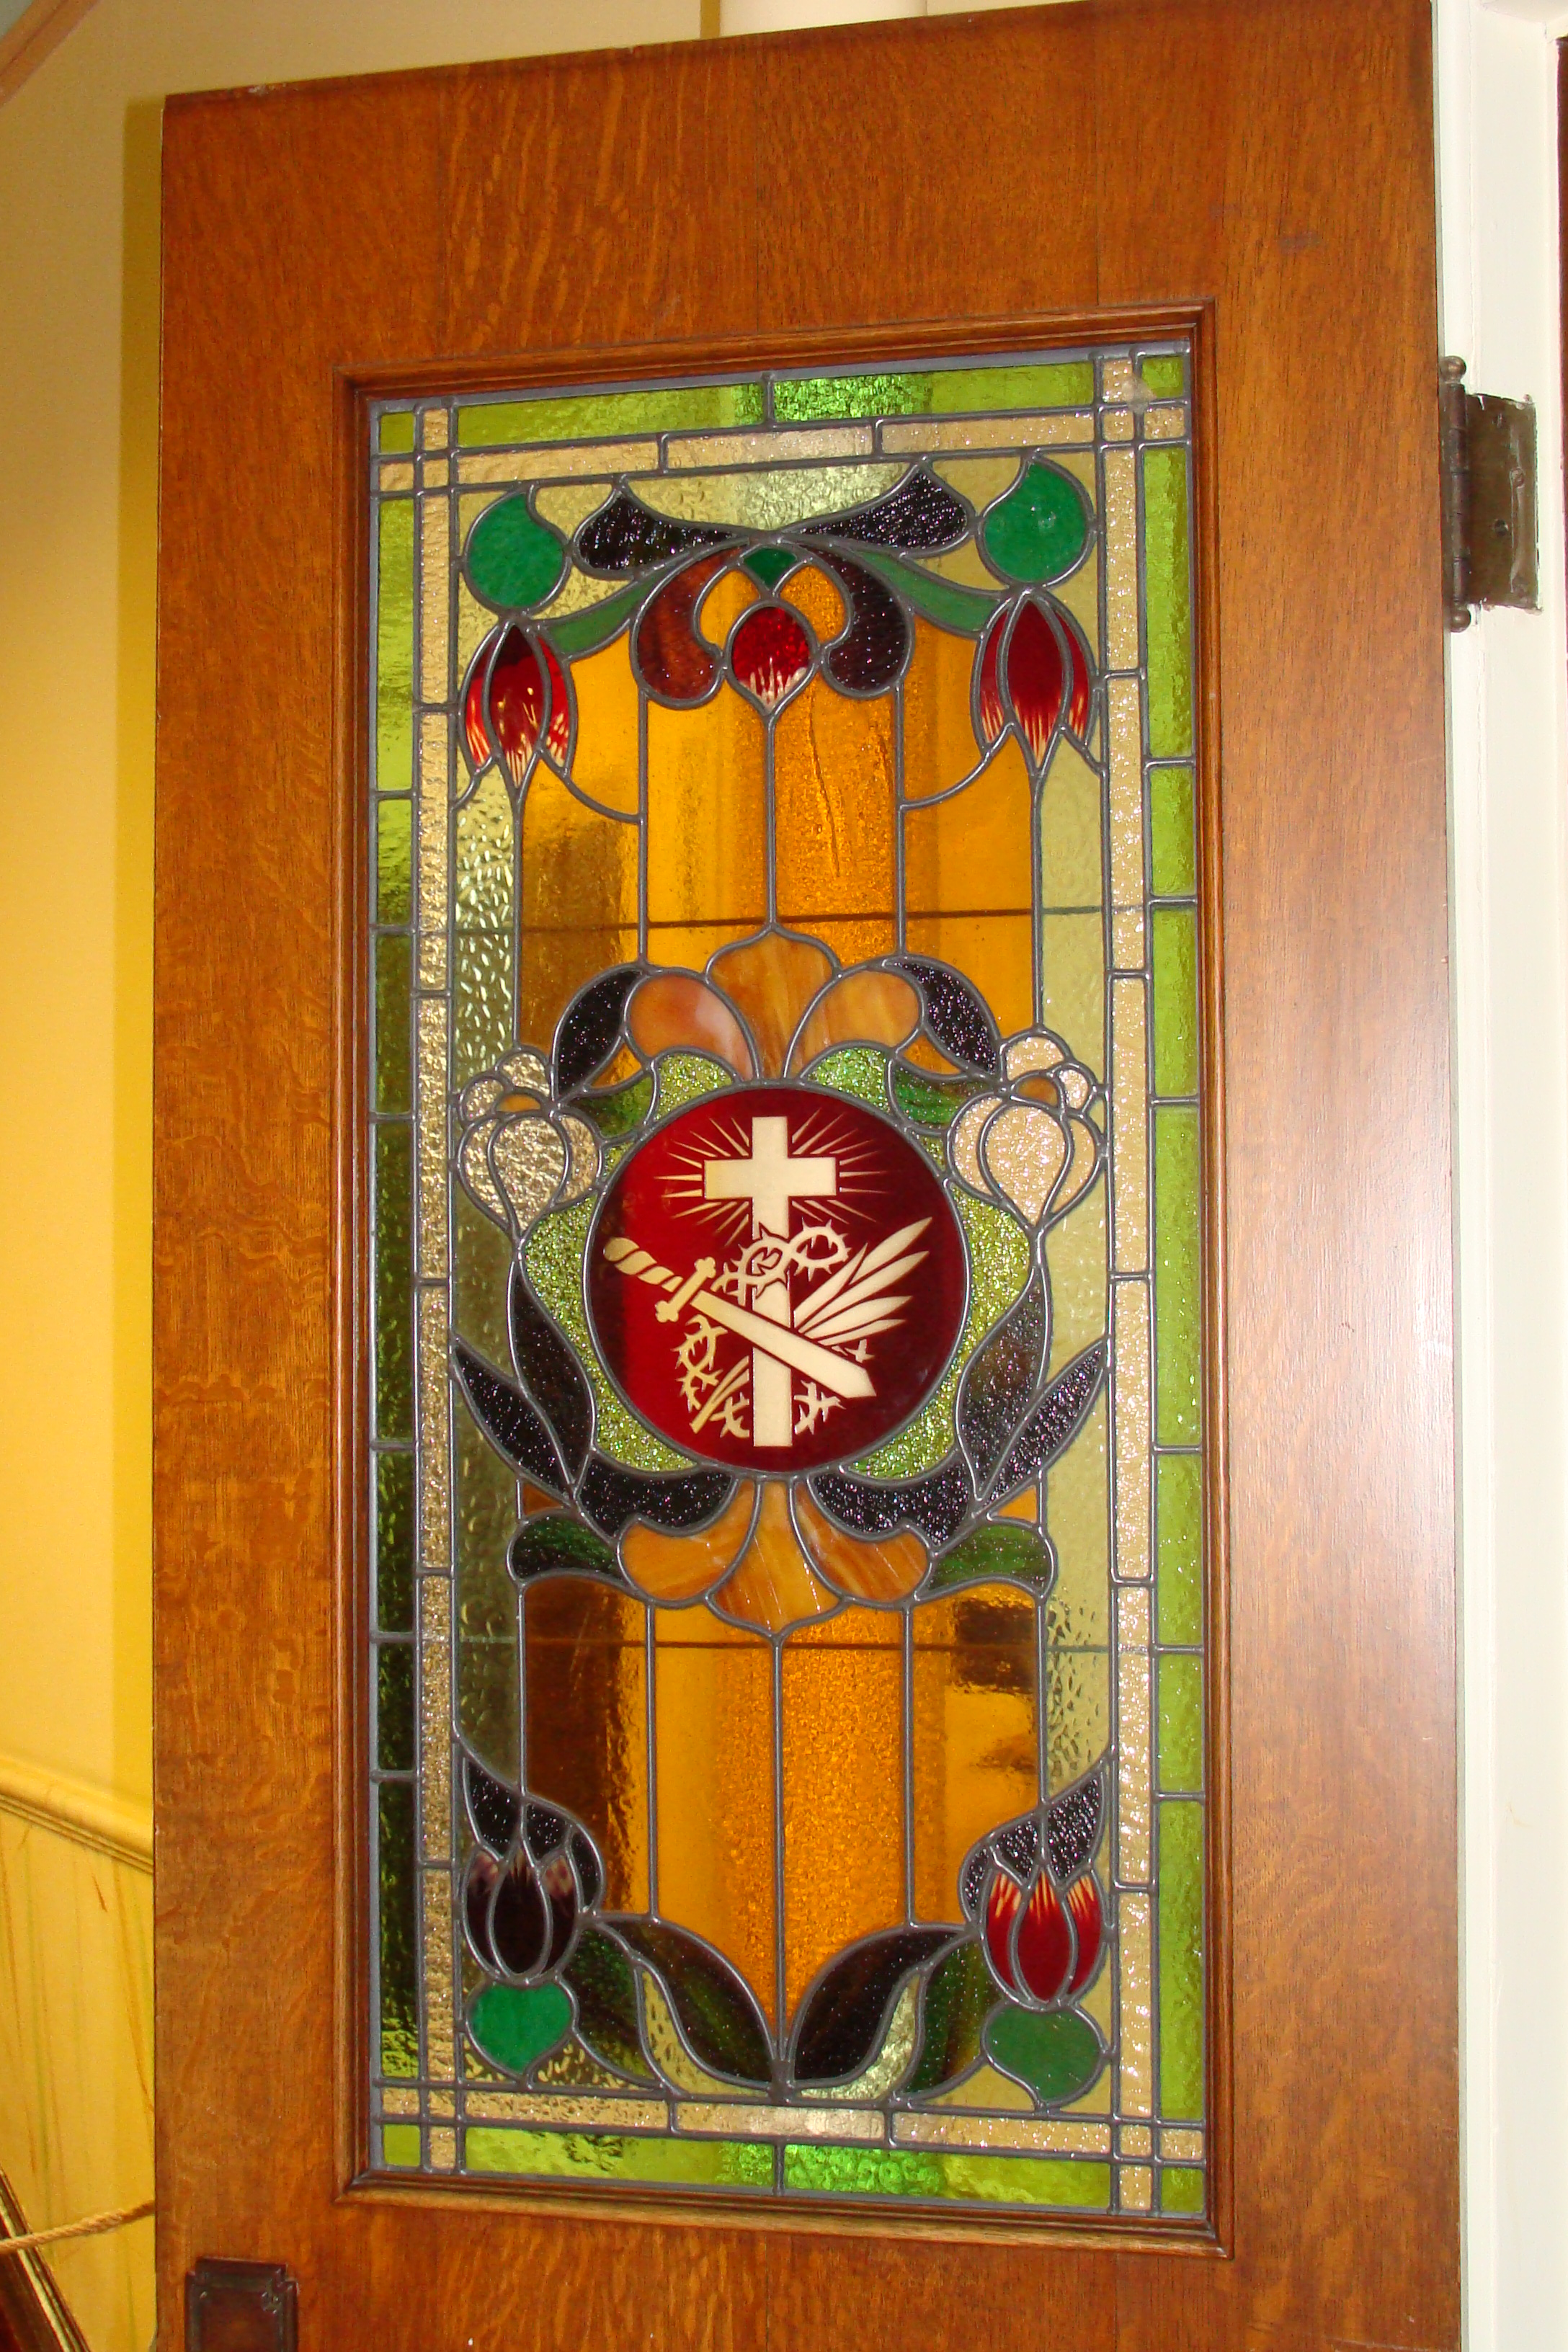 File:Stain Glass Door Window.JPG